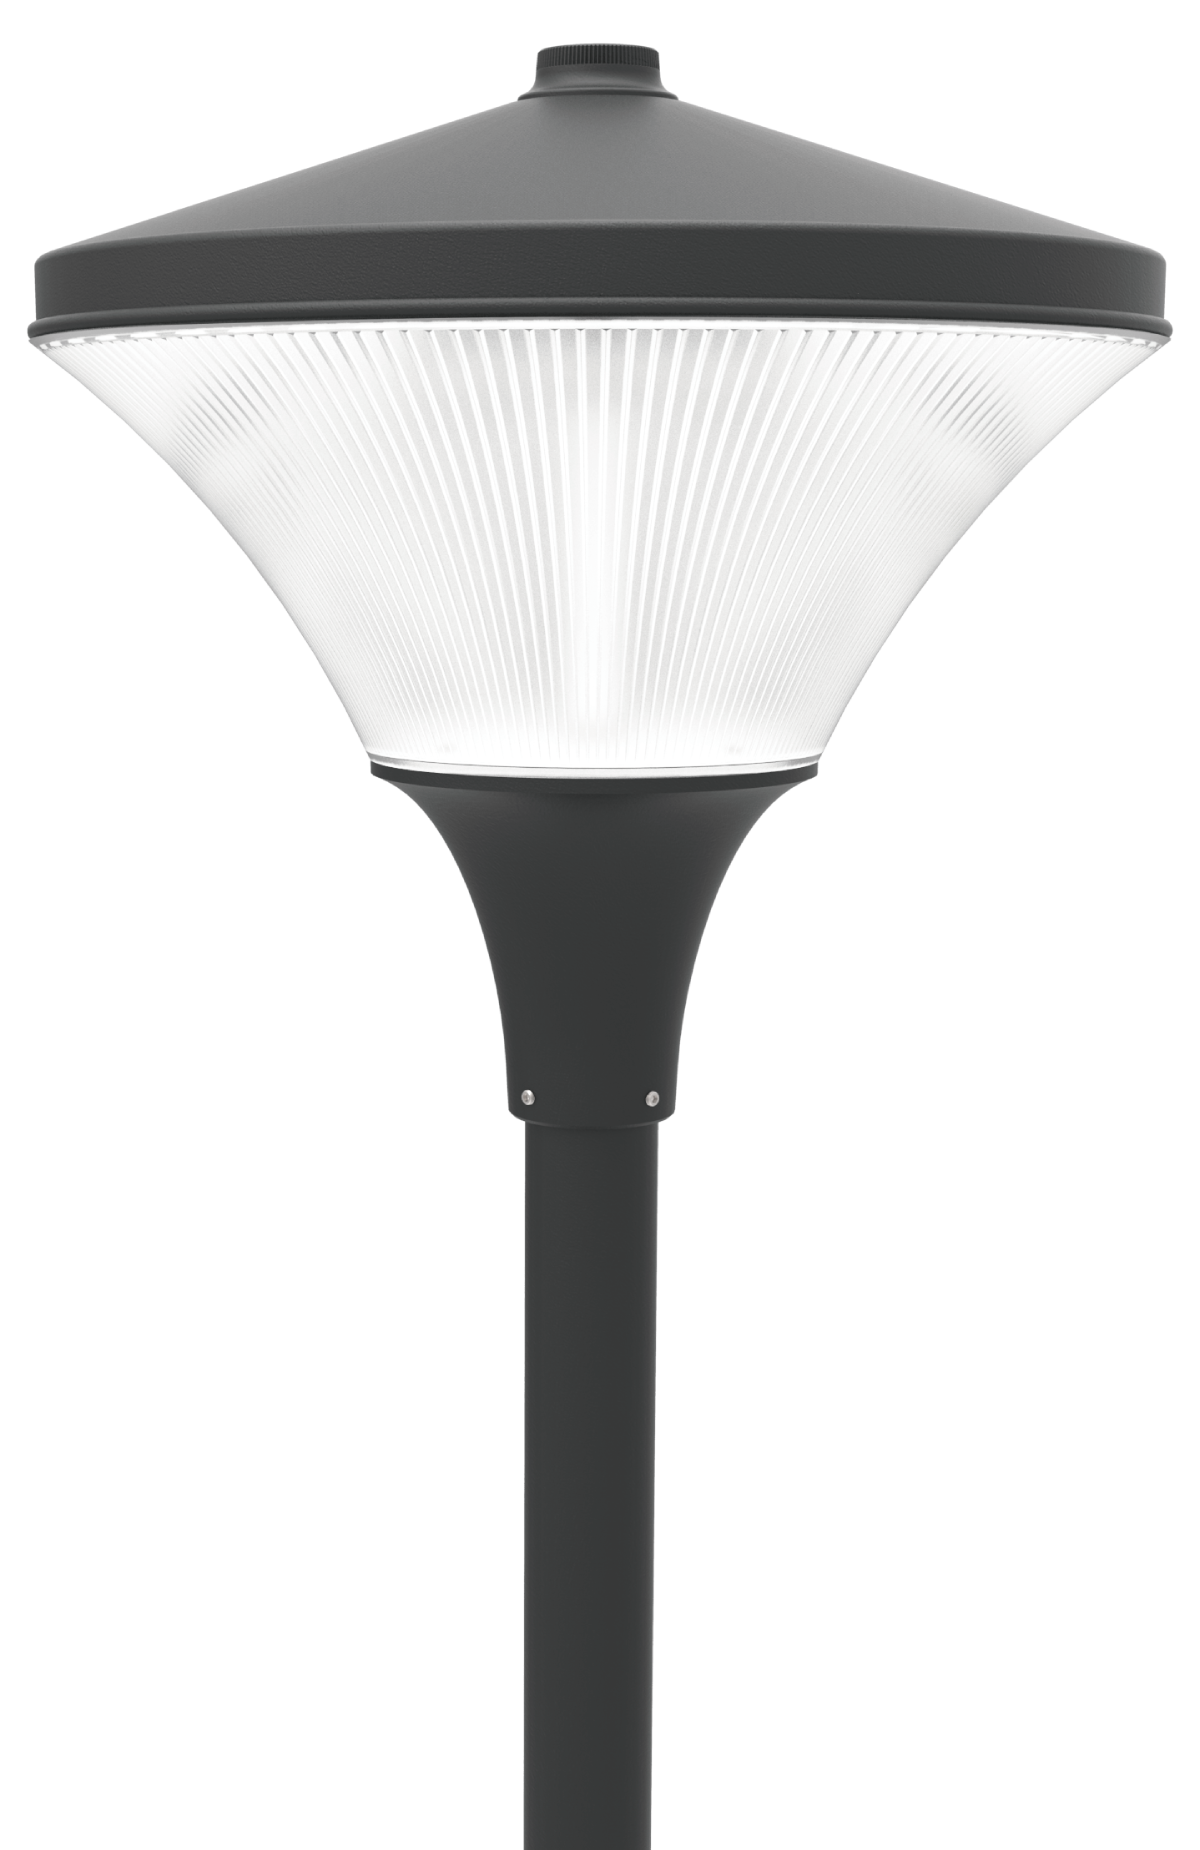 Led pt 641 series led post top light fixtures outdoor luminaires send us an email aloadofball Gallery